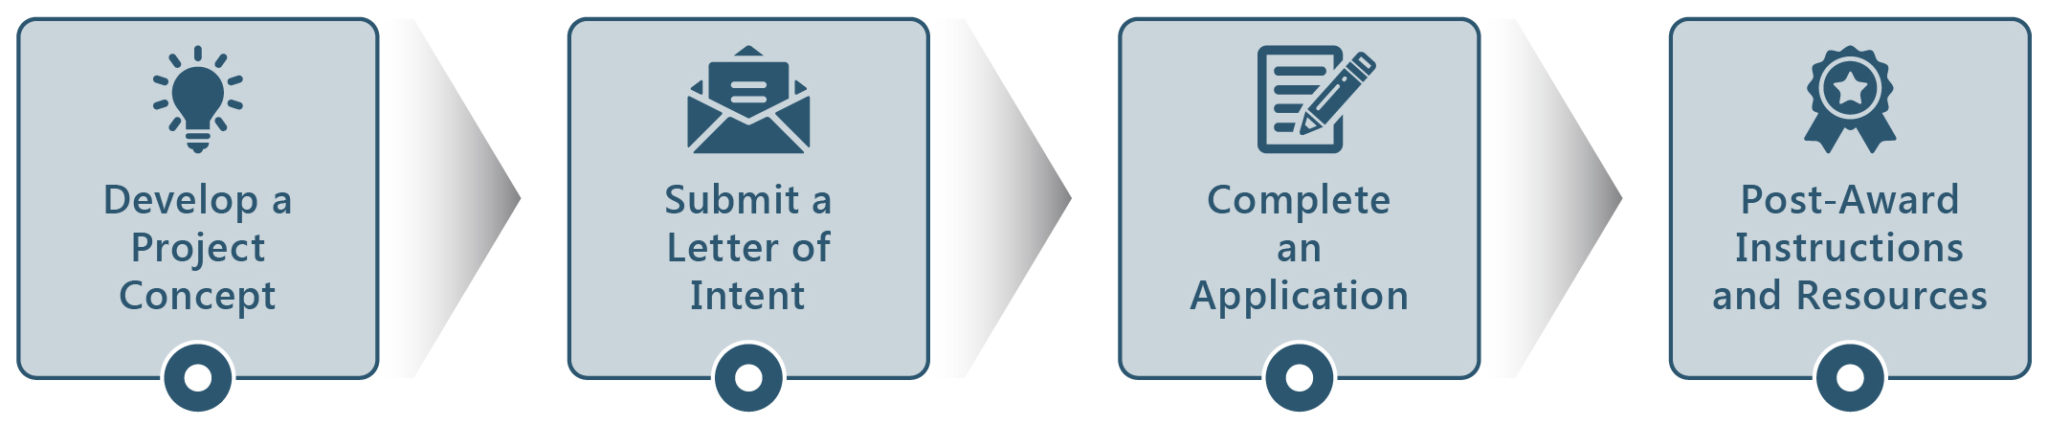 How to apply for funding flow graphic.